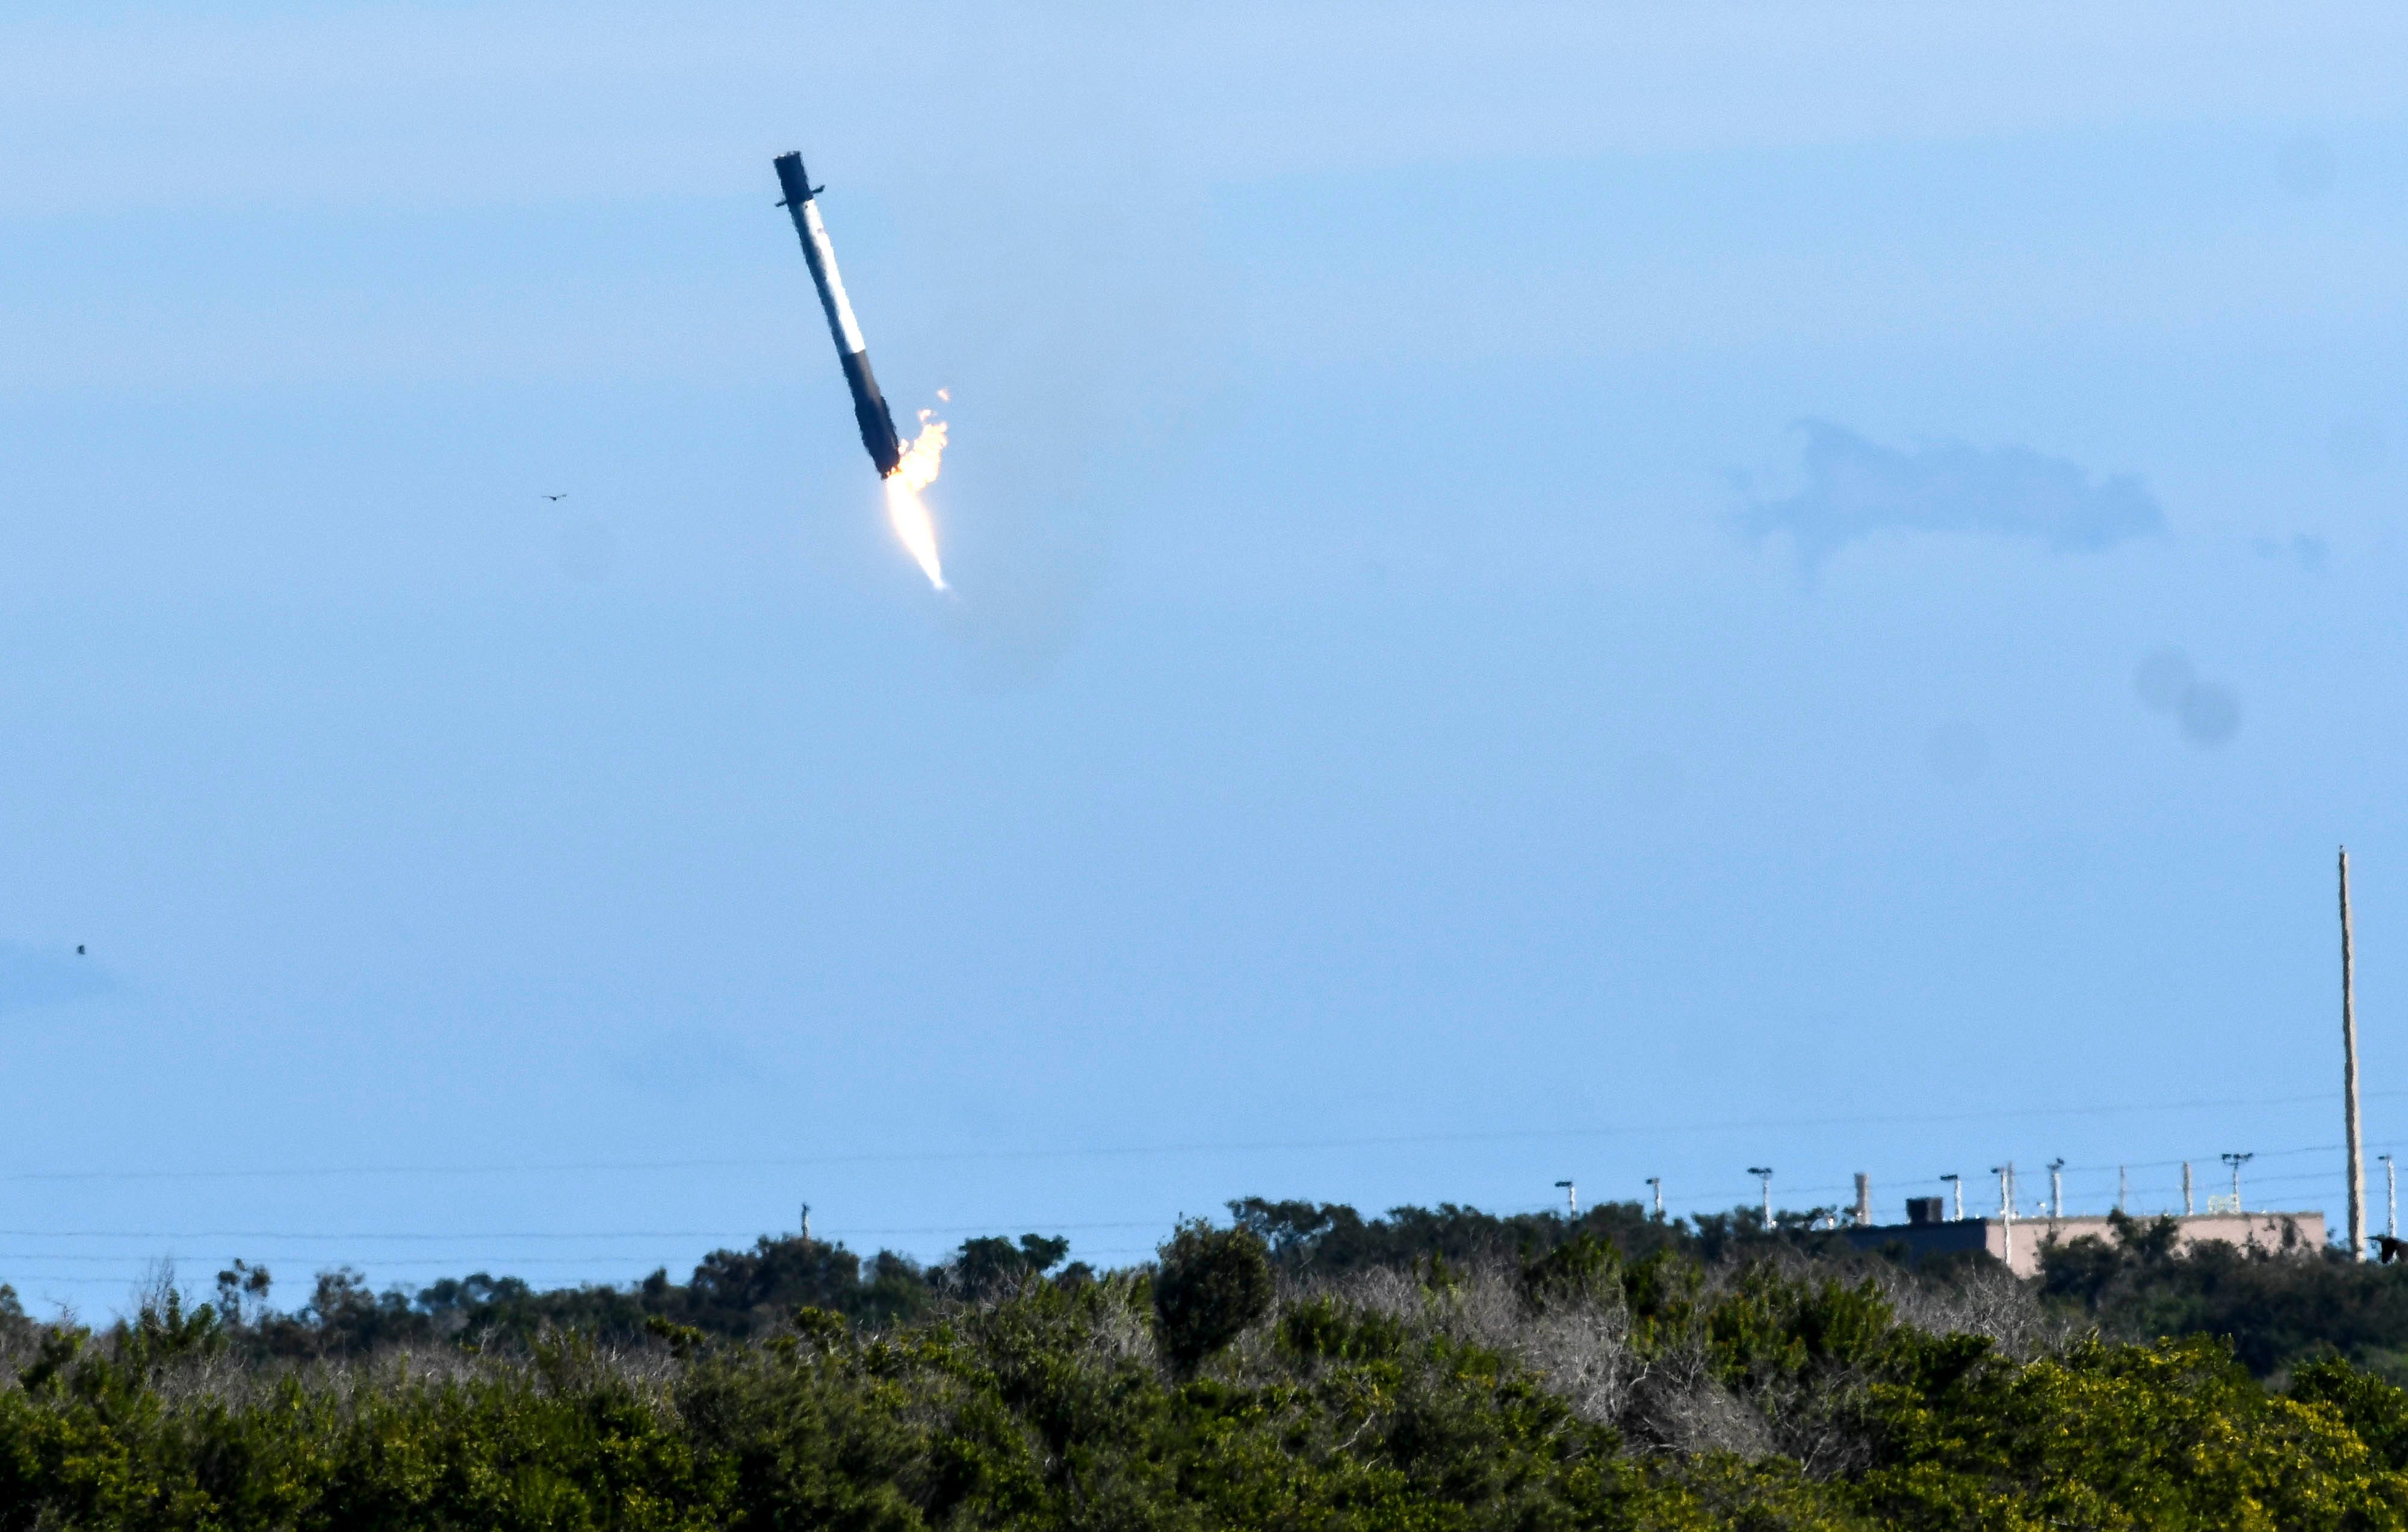 A SpaceX Falcon 9 first stage comes down for landing in the ocean off Cape Canaveral Air Force Station Wednesday, Dec. 5, 2018. The rocket delivered its cargo to orbit but landed off target.